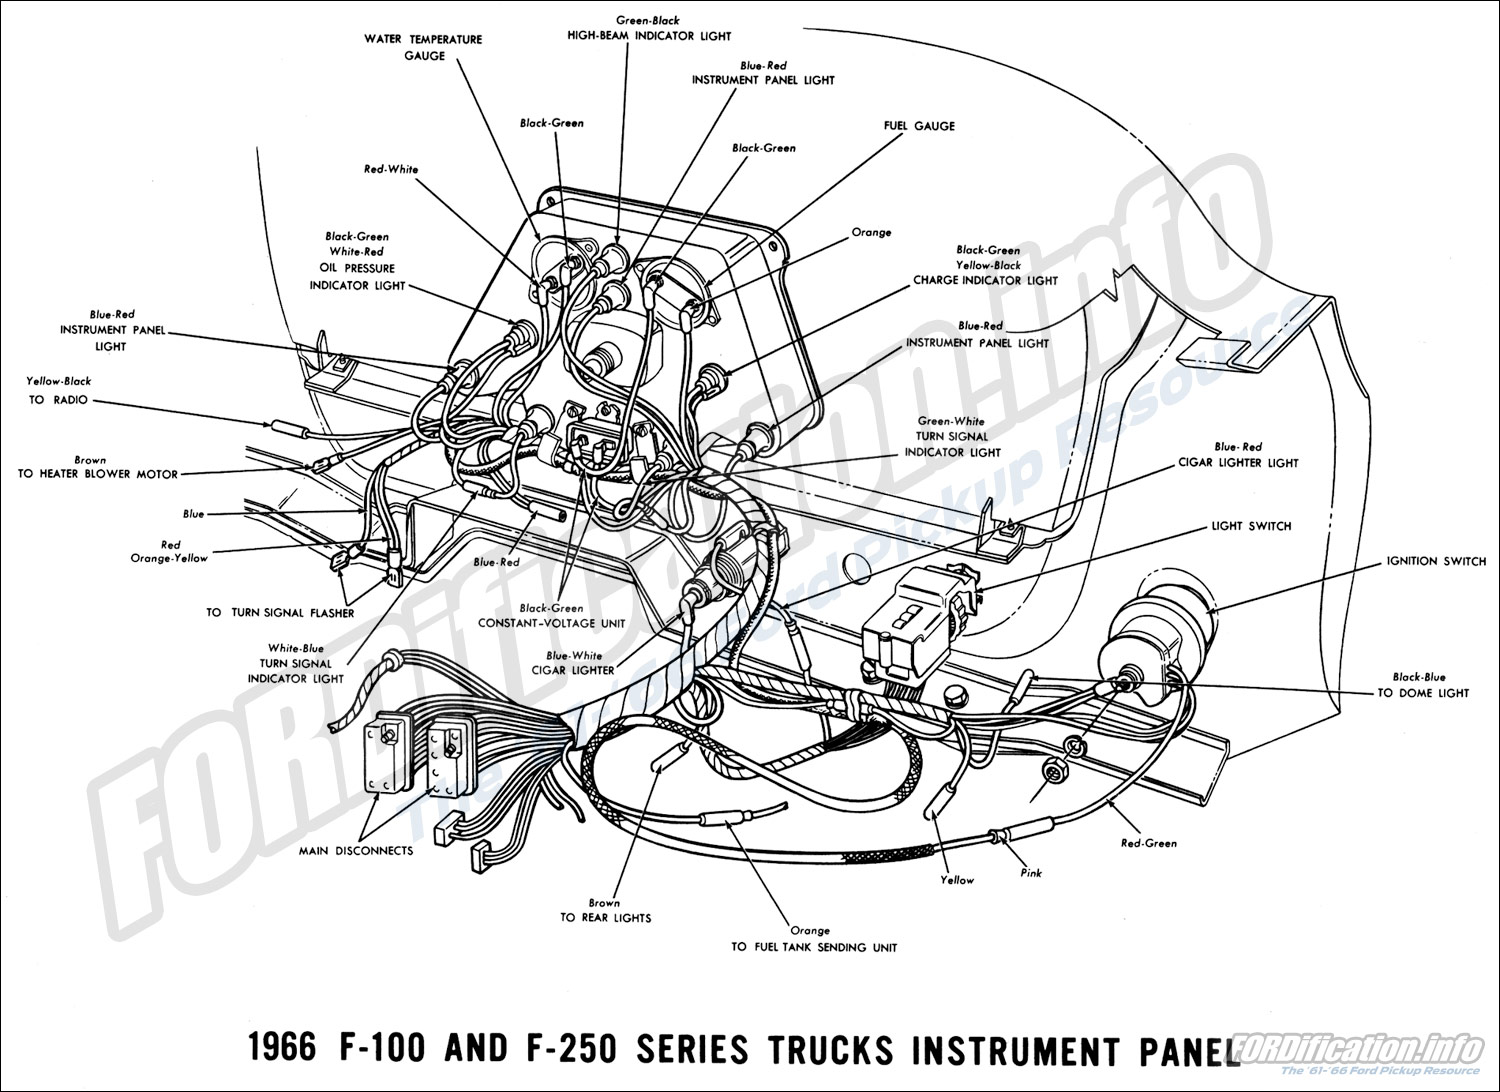 hight resolution of 66 ford f100 wiring diagram wiring diagram database 66 ford f250 wiring diagram